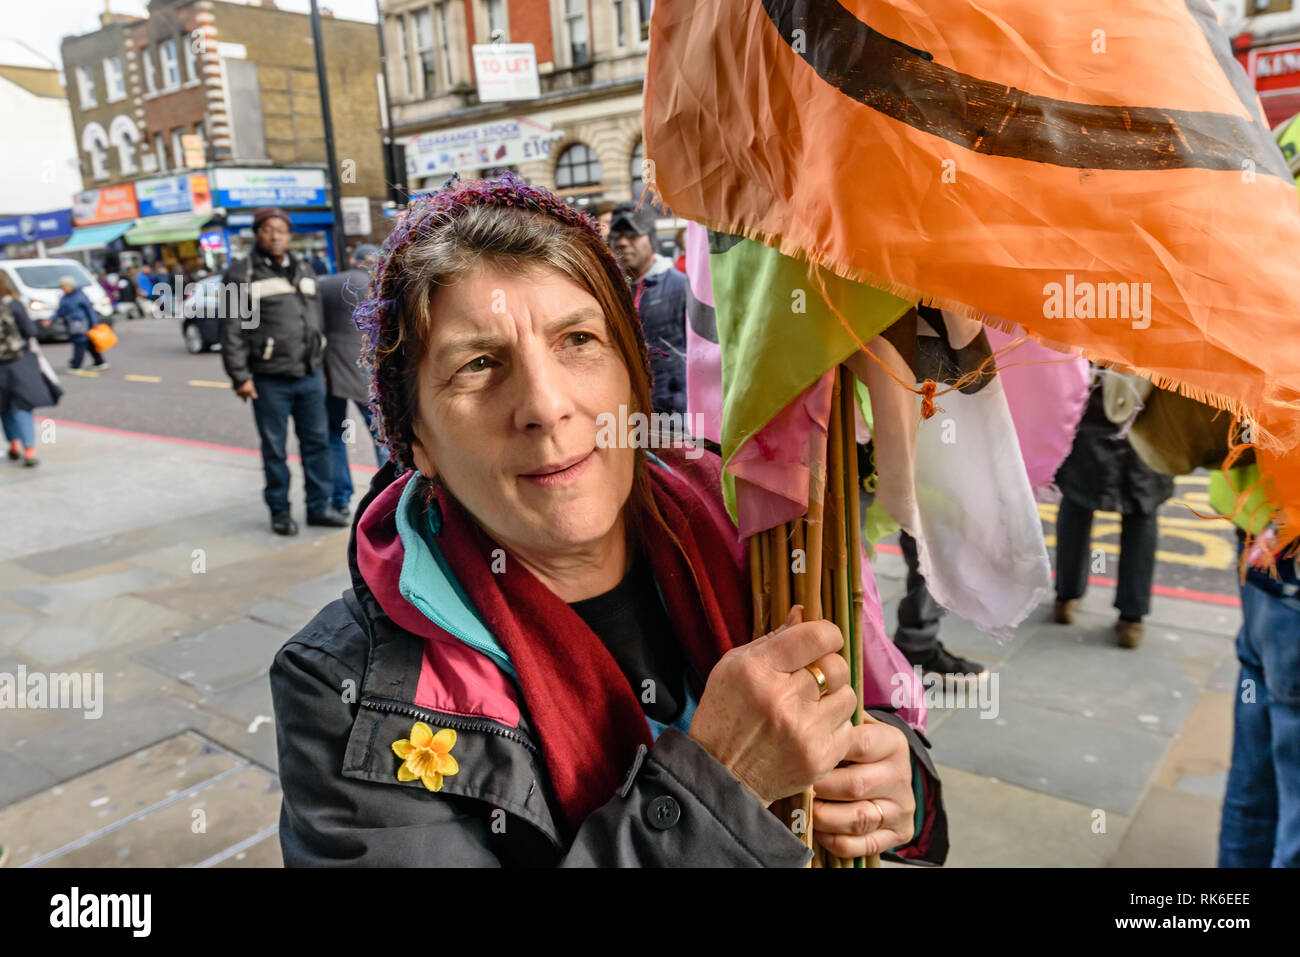 London, UK. 9th February 2019. A woman hands out Extinction Rebellion flags at the start of  a street party blocking the A10 Kingsland High St in Dalston for two hours with speeches, music and spoken word performances, t-shirt printing, face painting and free food, with dancing to a samba band which led them for a brief march up the road before returning to continue the protest in Gillett Square. XR  is in open rebellion against the UK Government for its criminal inaction in the face of impending climate and ecological collapse. Peter Marshall/Alamy Live News - Stock Image